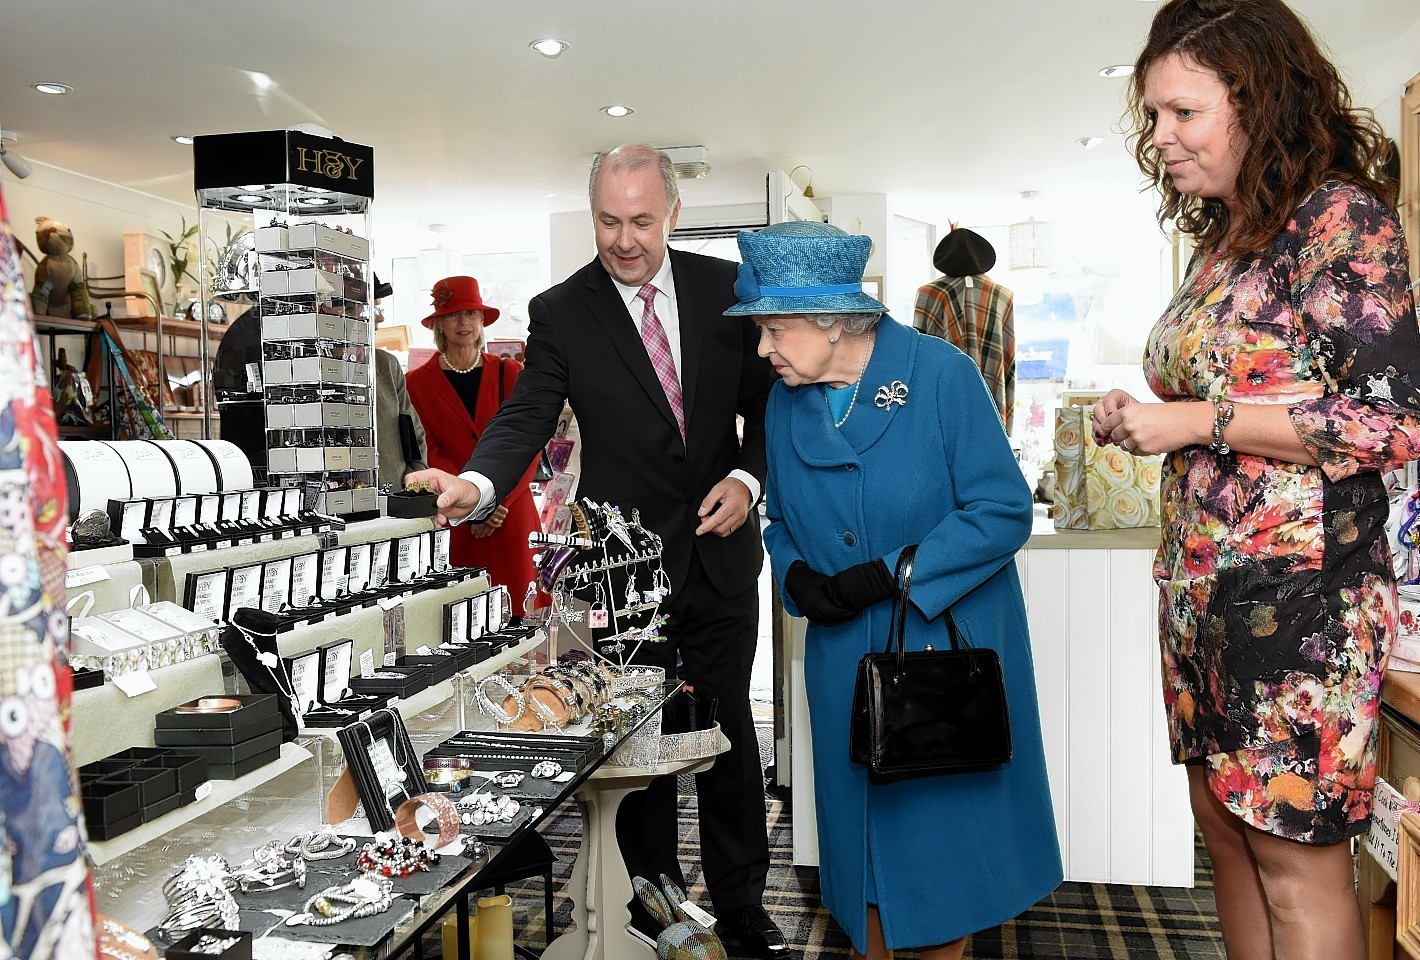 The Queen at the Brakeley Gift Room in Ballater. Credit: Kevin Emslie.